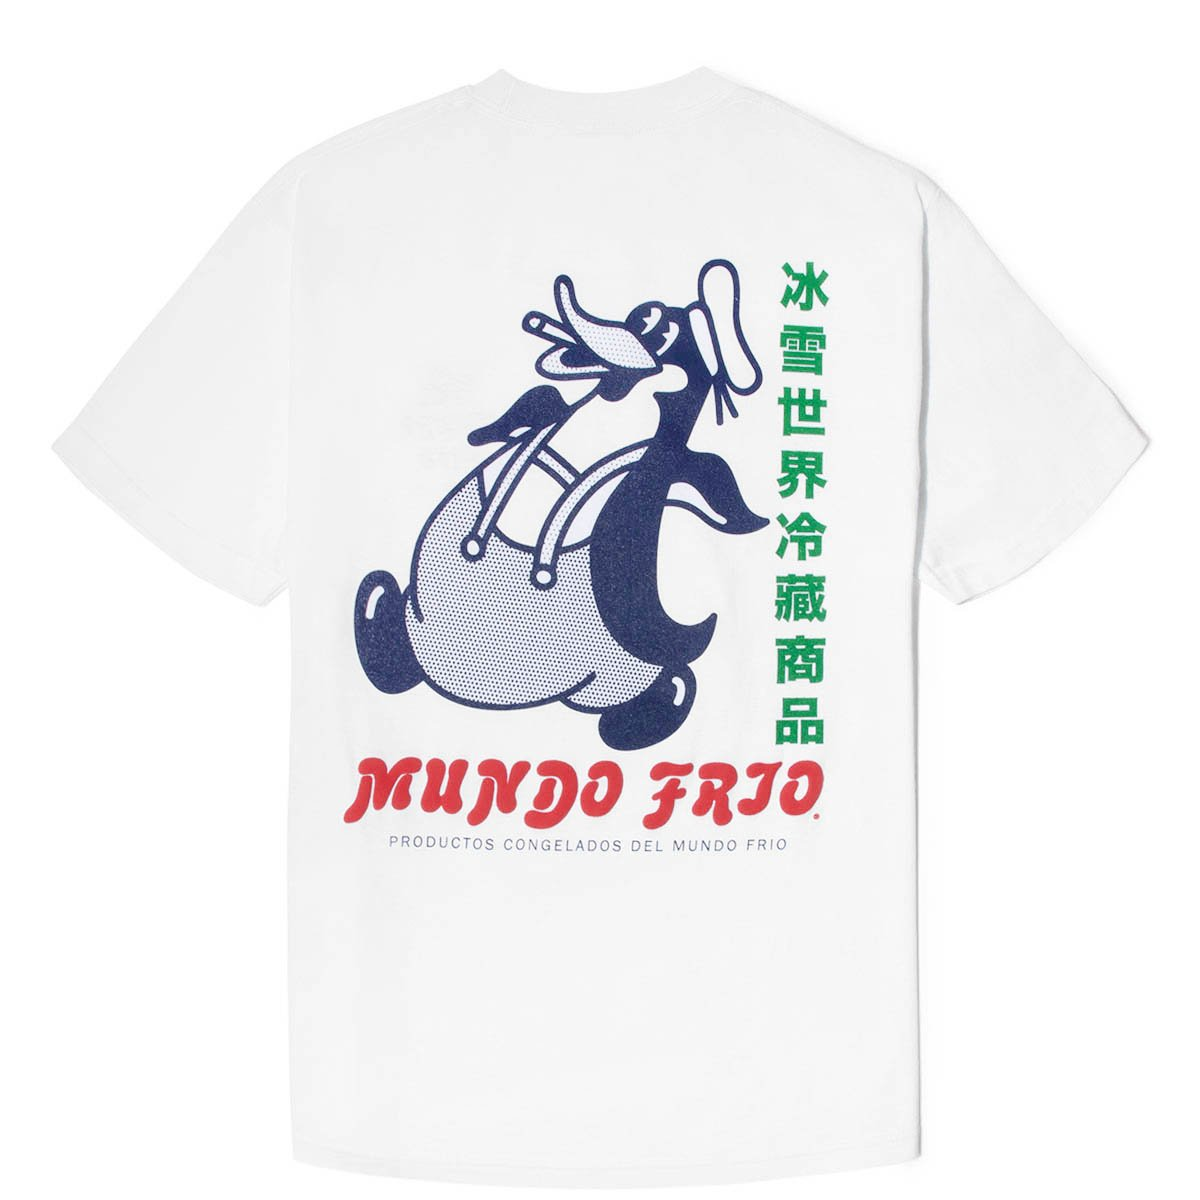 Cold World Frozen Goods T-Shirts MUNDO FRIJO